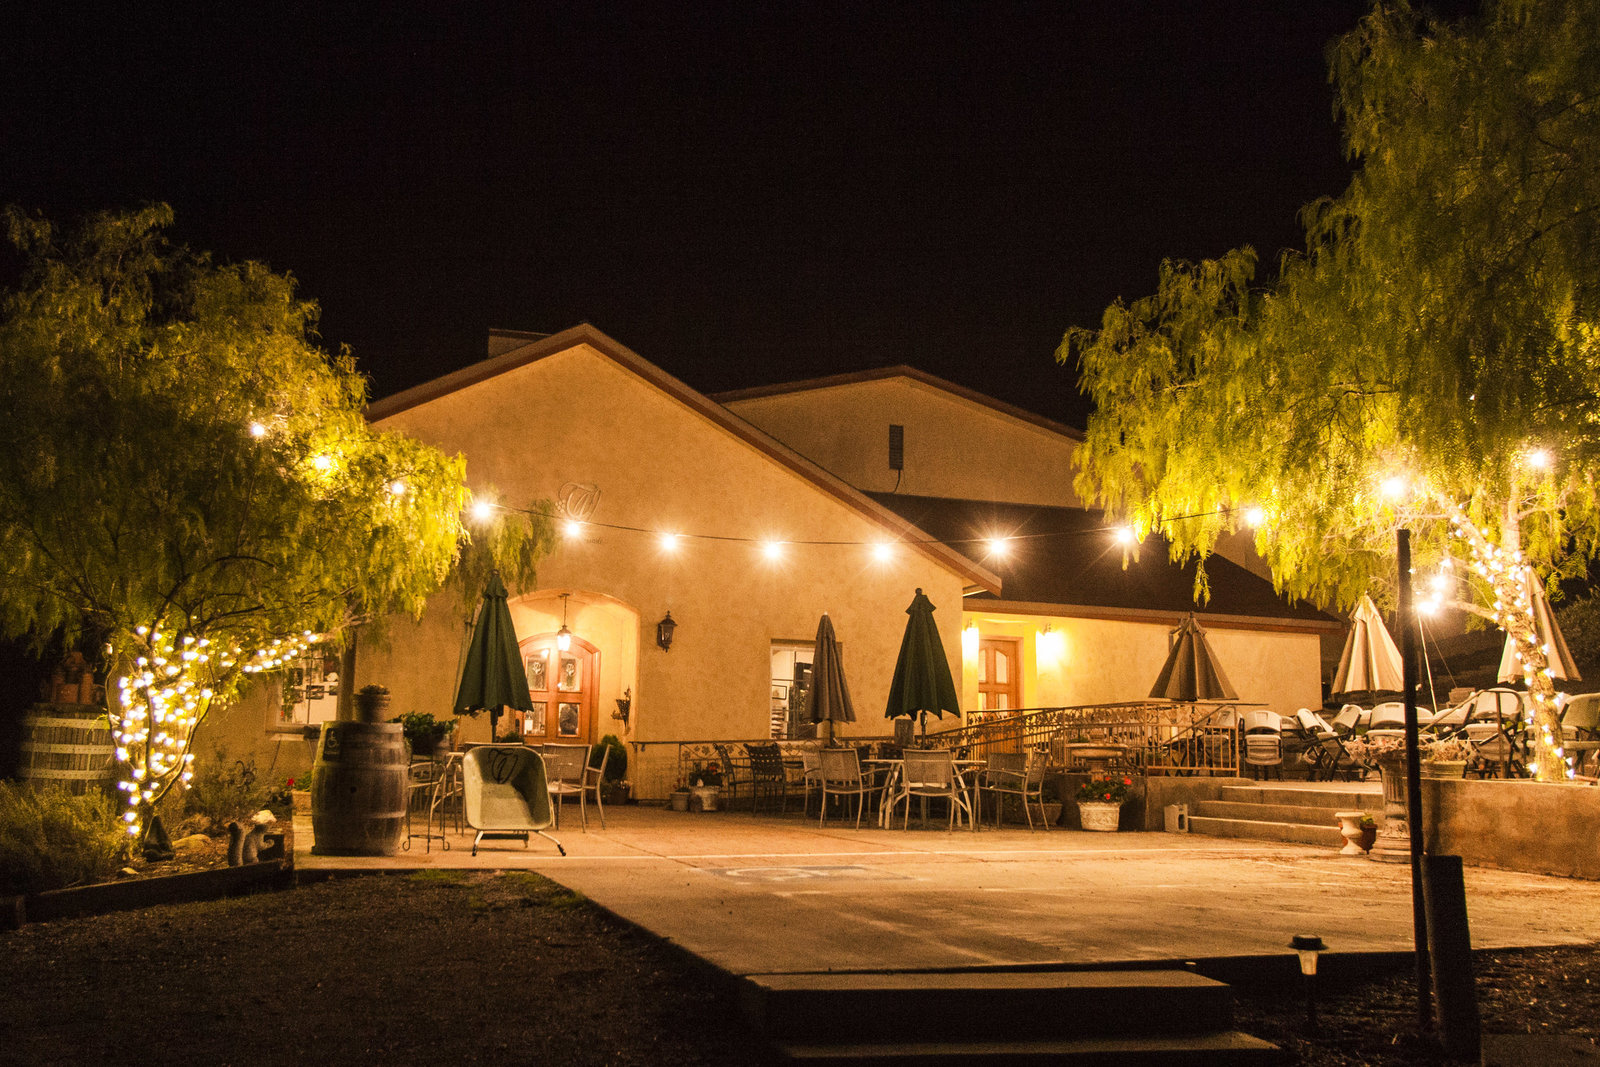 winery, nighttime shot, exterior